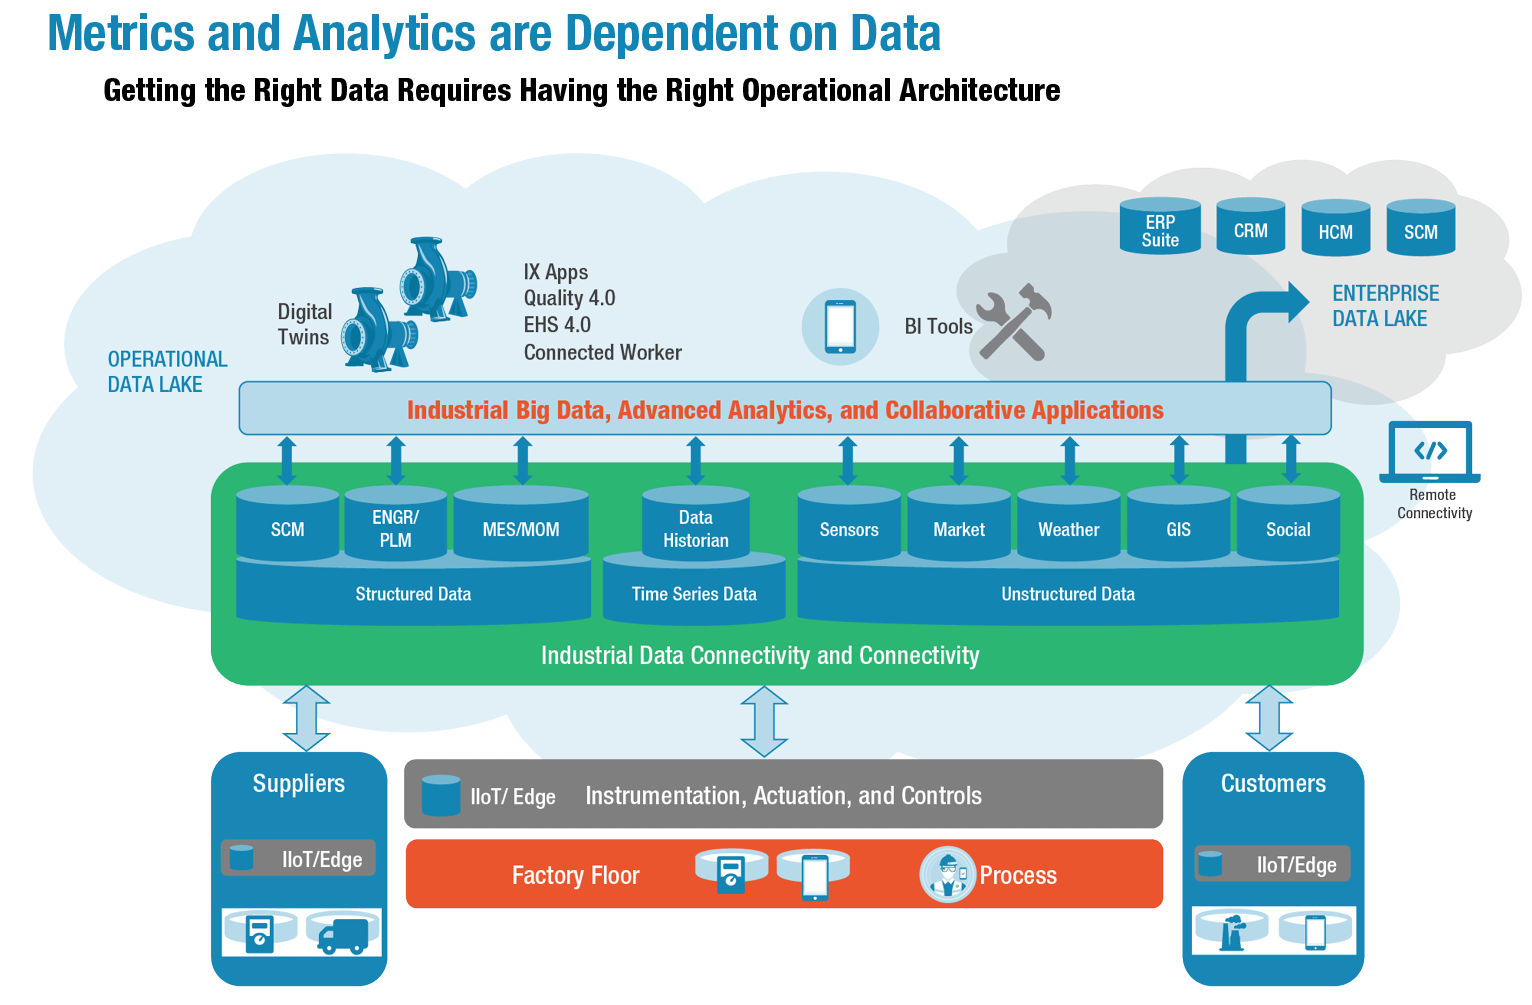 LNS - DCI - Metrics and Analytics are Dependent on Data